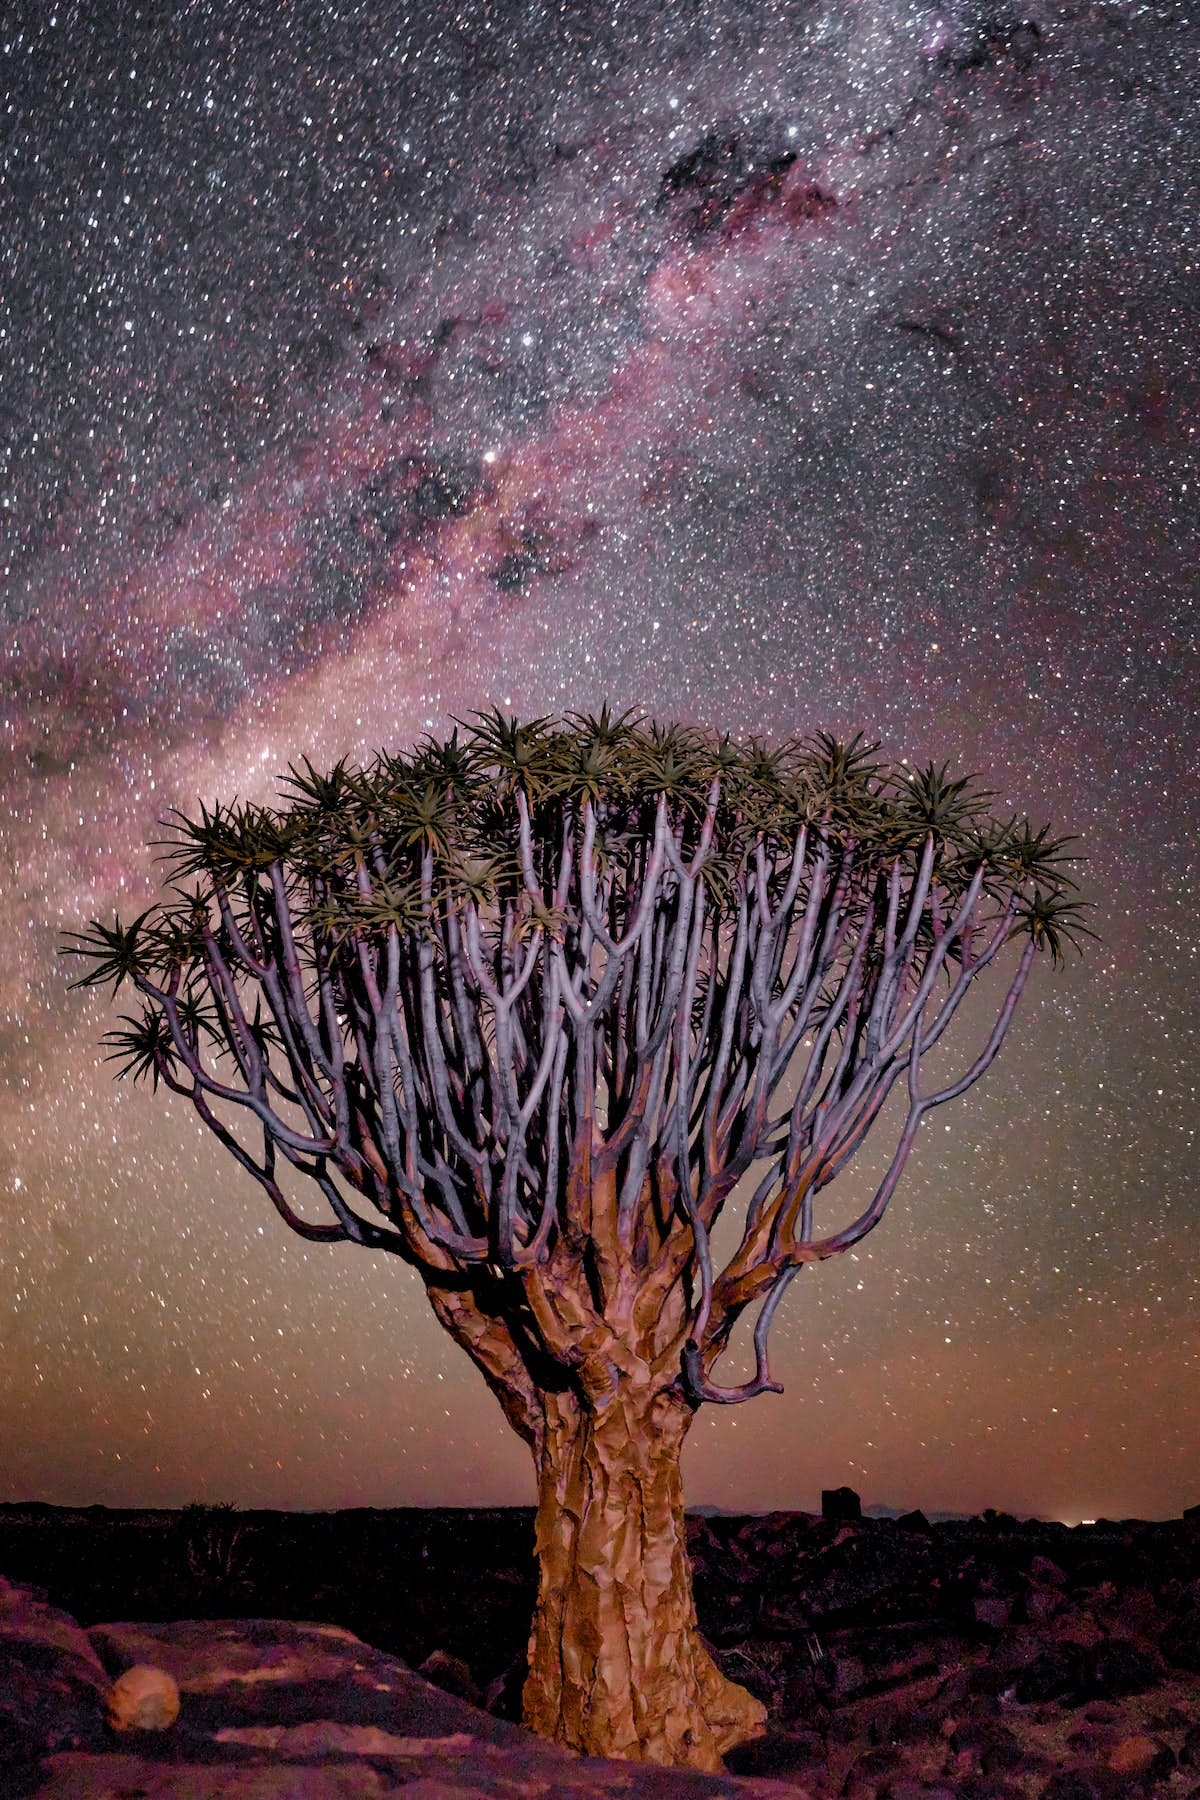 A quiver tree against the night sky with the milky way clearly visible